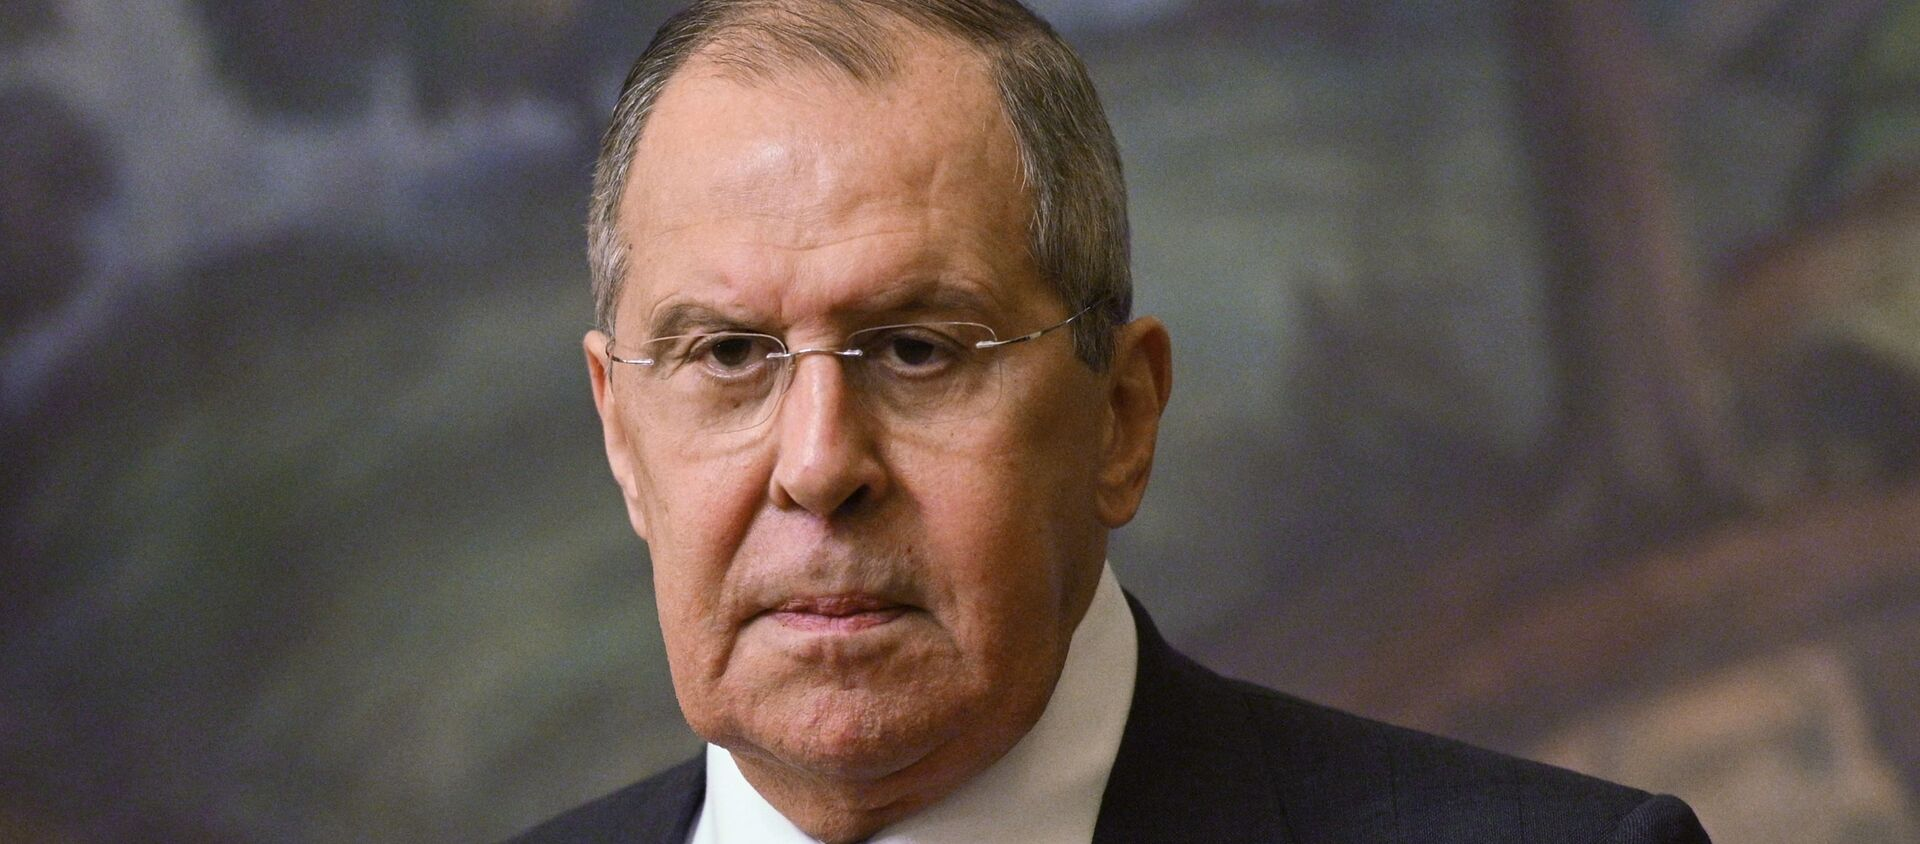 Russian Foreign Minister Sergei Lavrov at a press conference following a meeting in Moscow with the Minister of Foreign Affairs of the Kingdom of Bahrain Abdel Latyf bin Rashid Az-Zayani. - Sputnik International, 1920, 06.07.2021